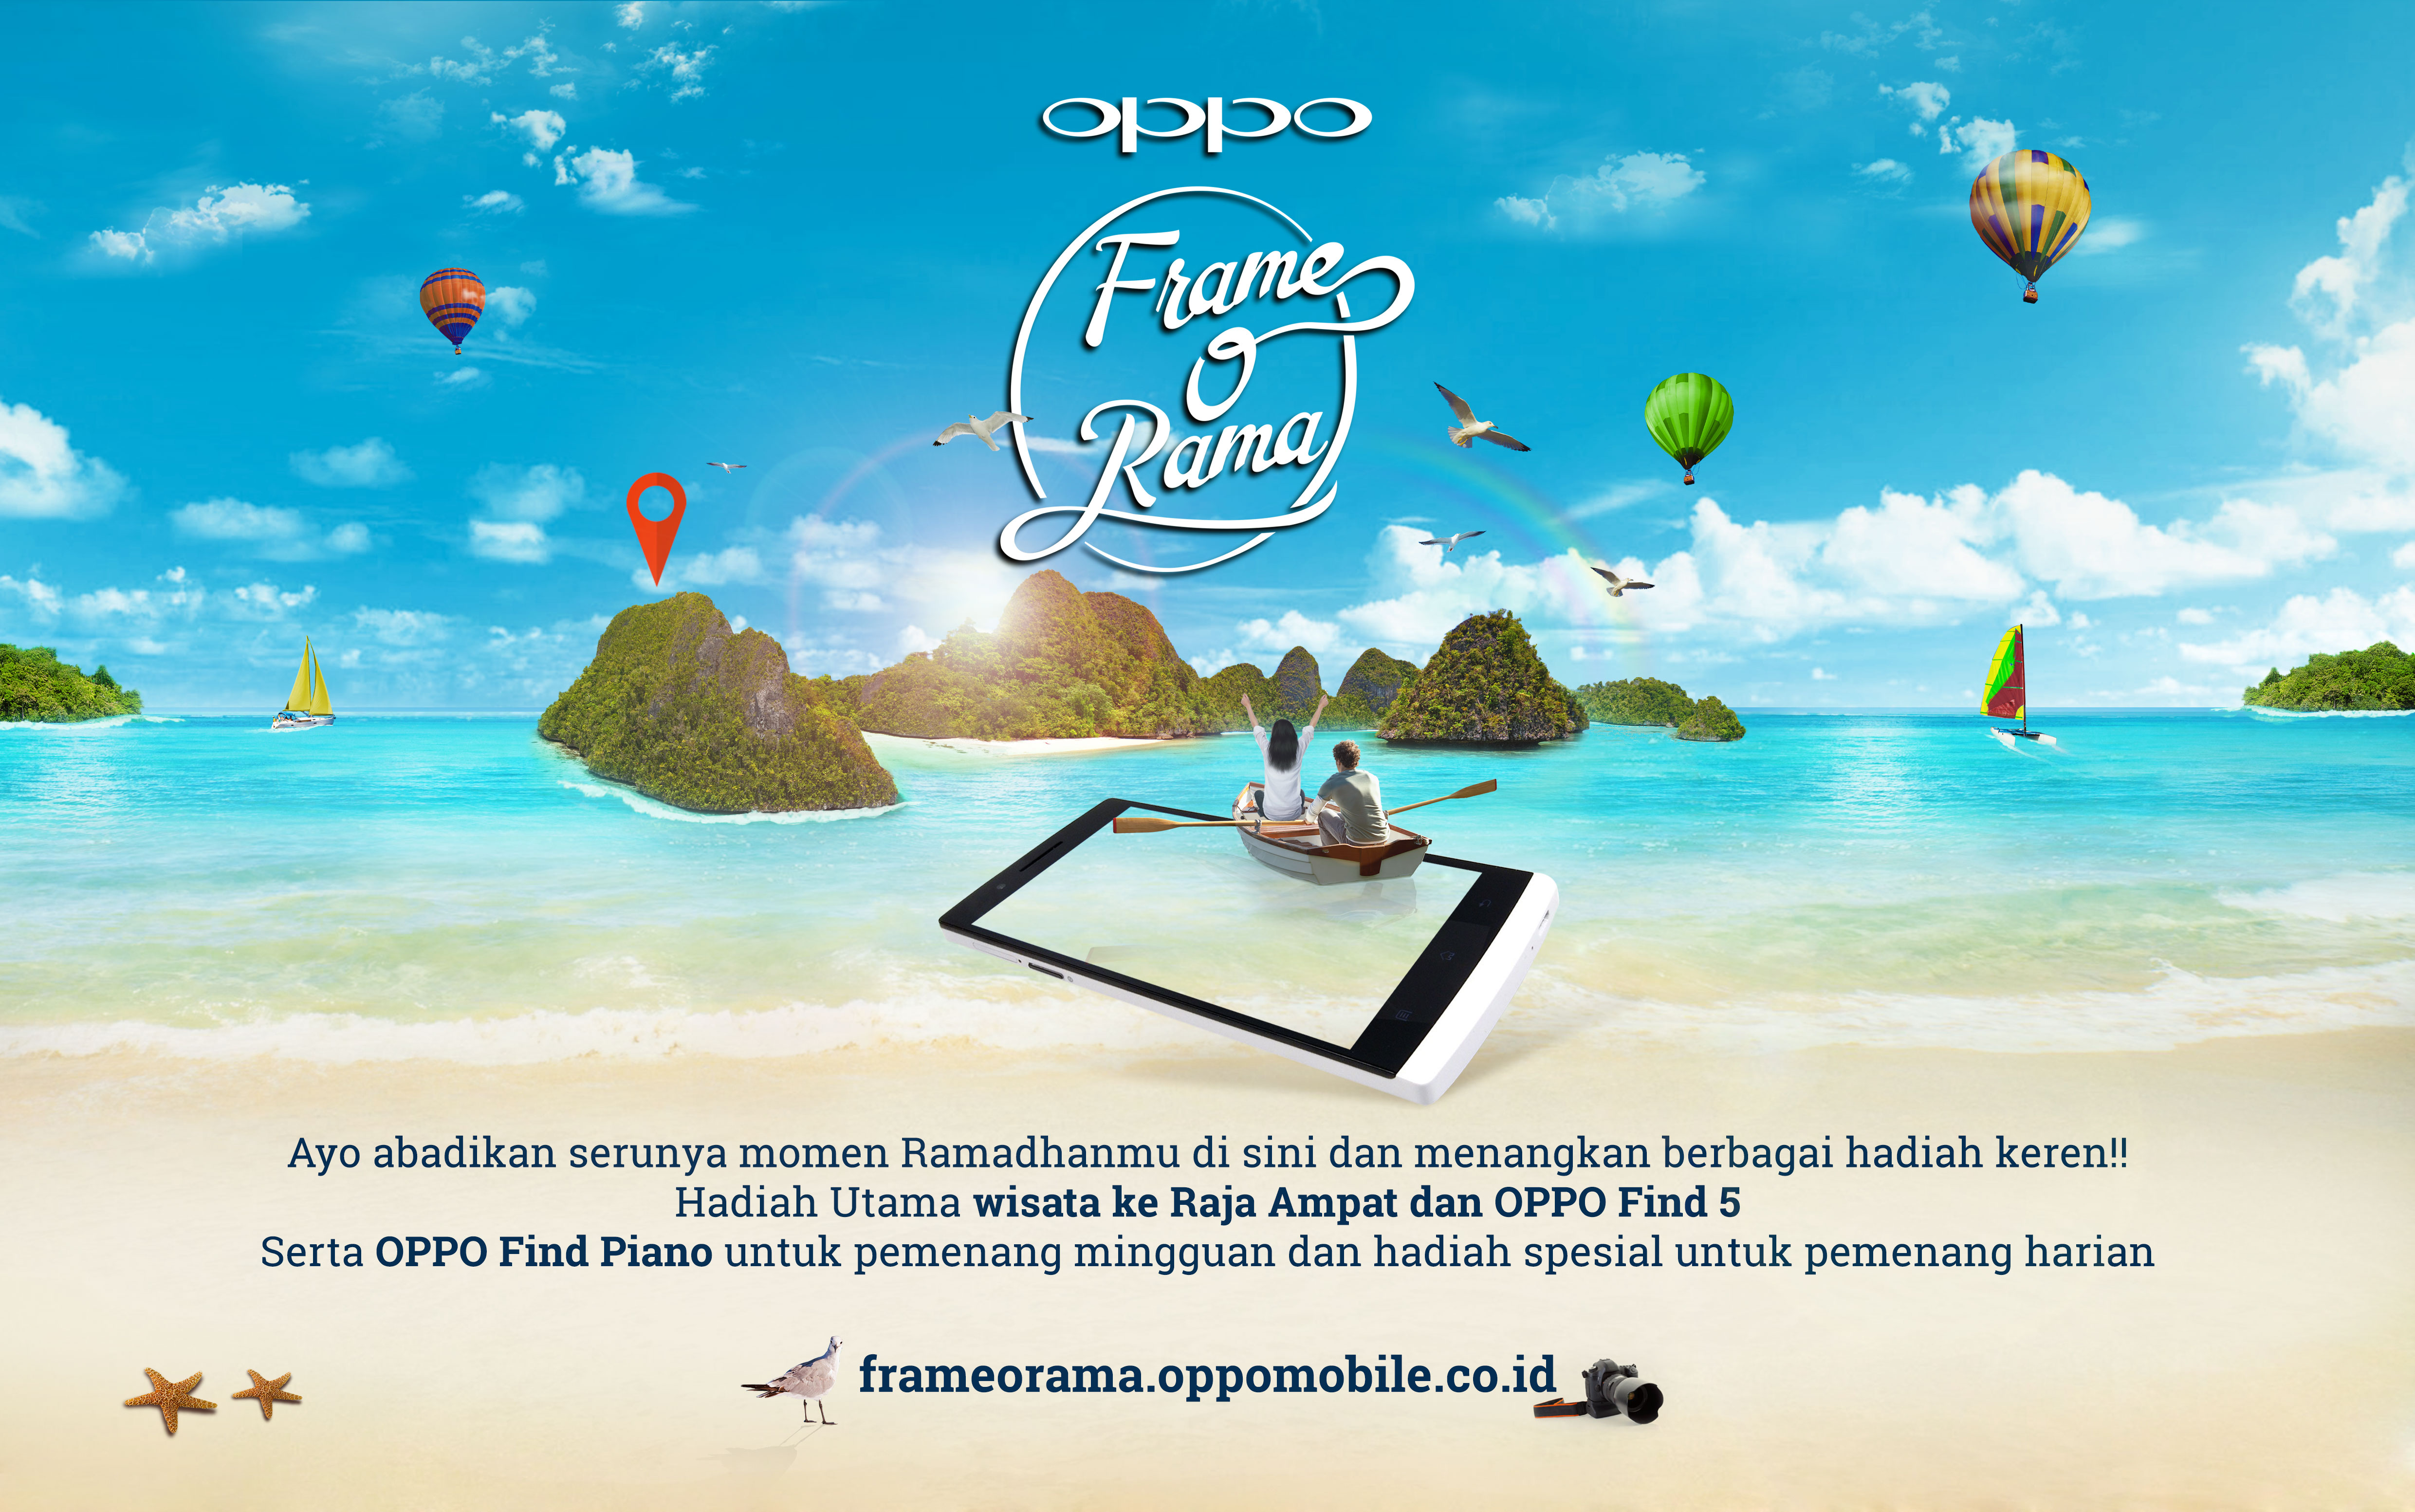 OPPO Find 5 Indonesia | Playing with hastag #FrameORama